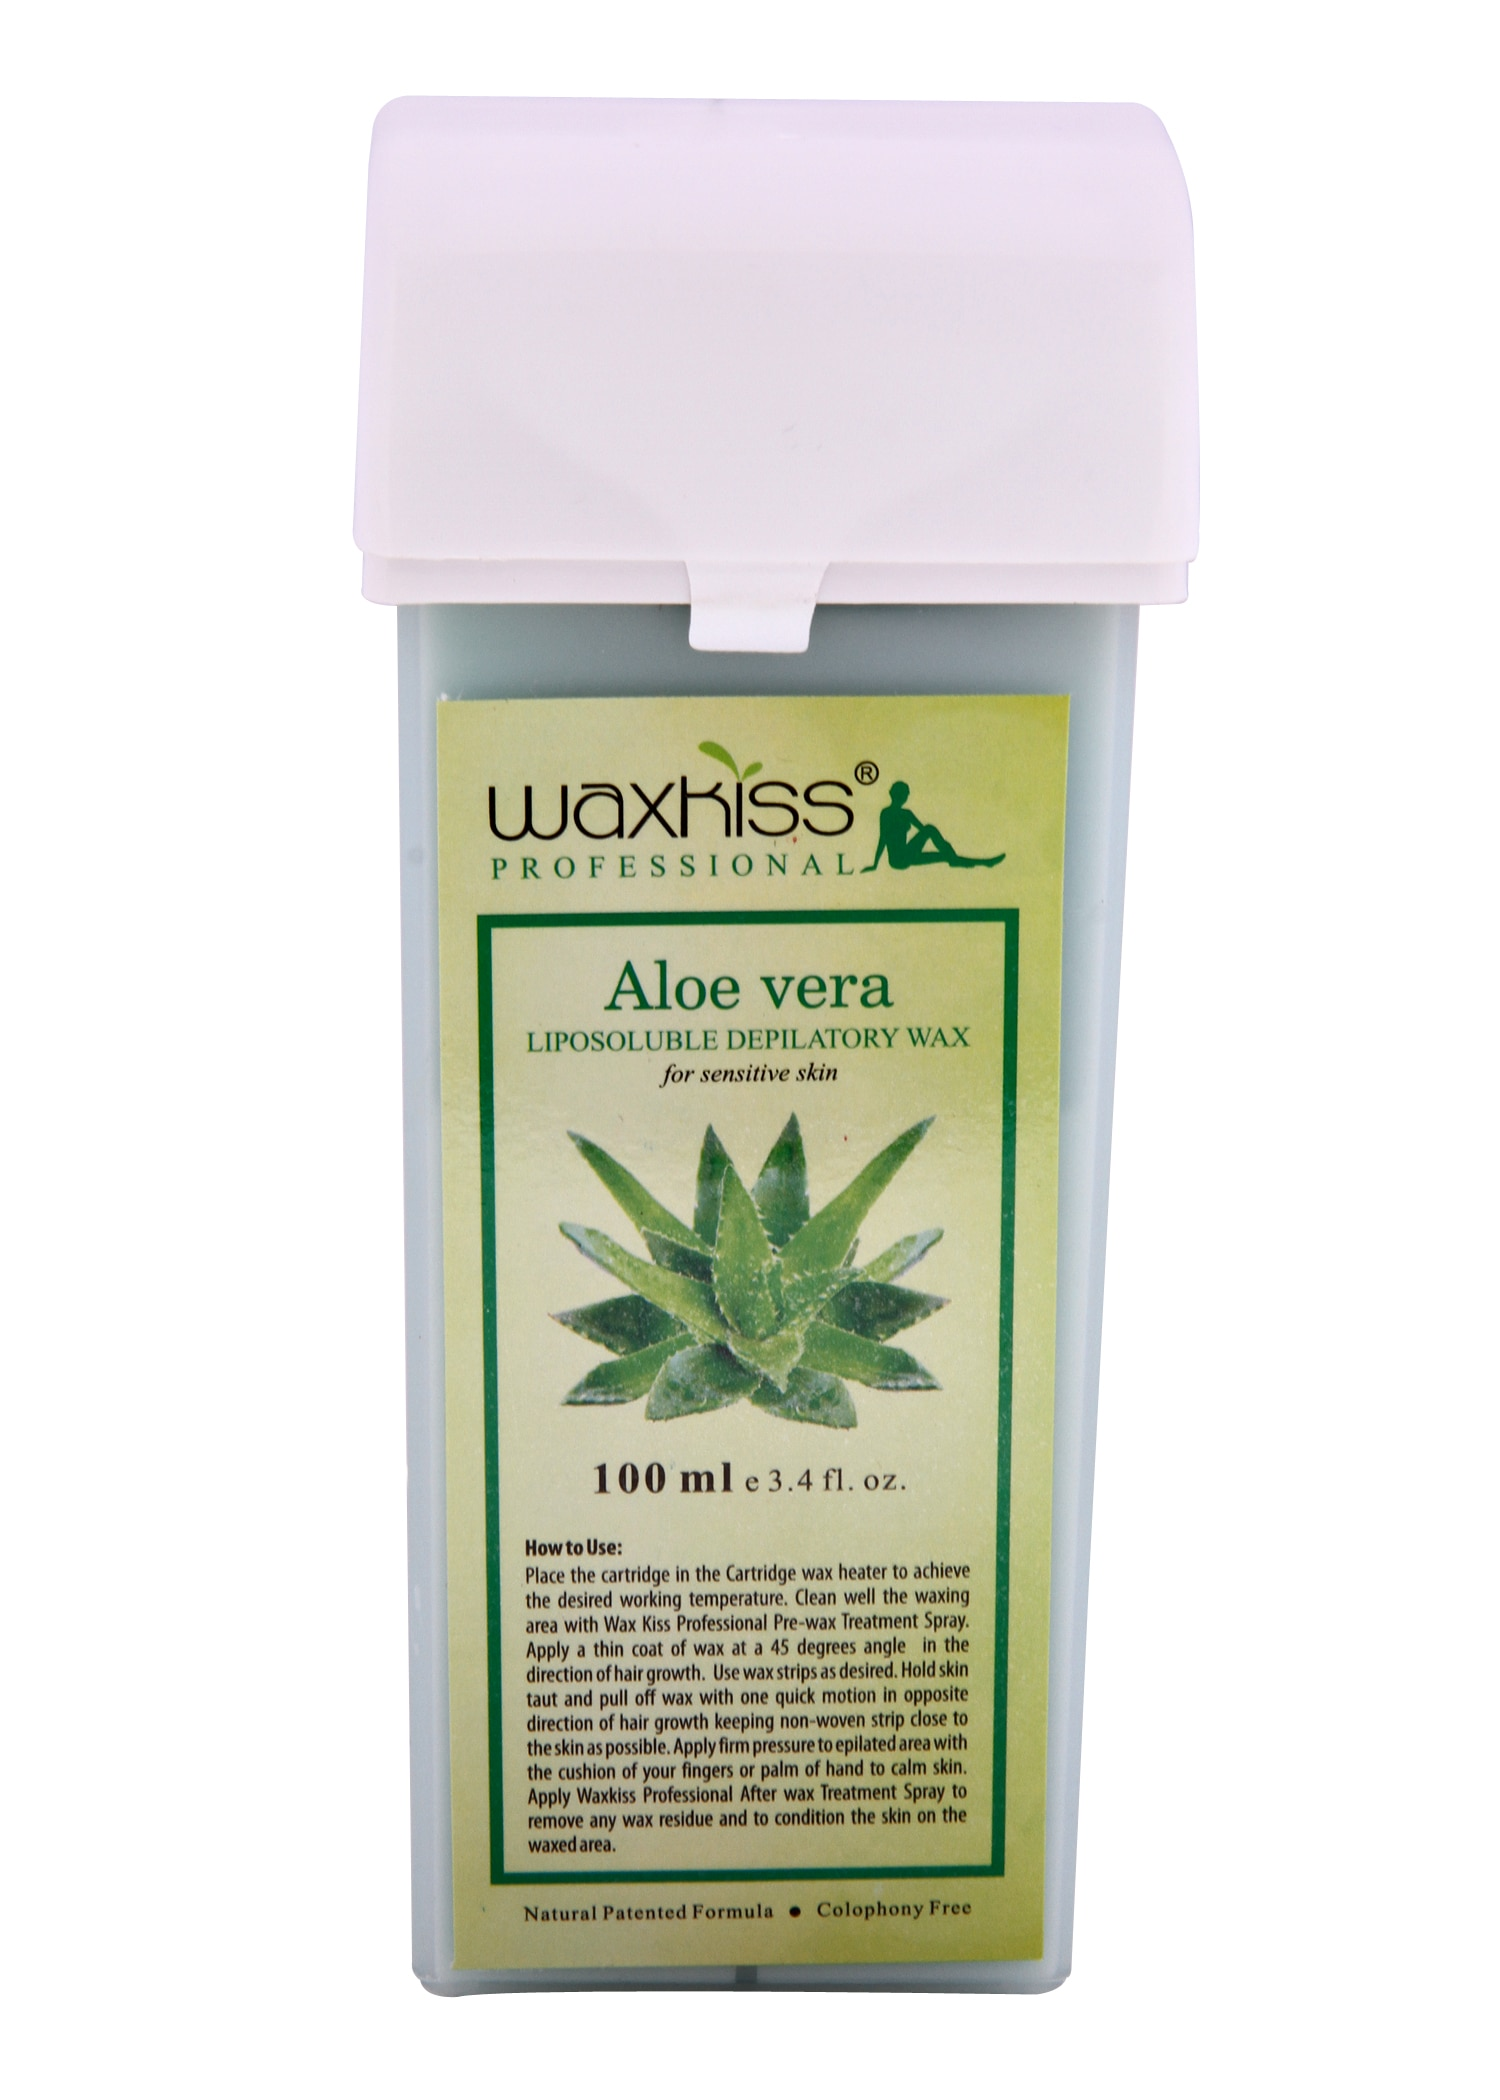 Liposoluble Depilatory Wax – Aloe Vera Cartridge wax 100 ml For Sensitive skin with its time tested properties heals , soothes and hydrates the skin.